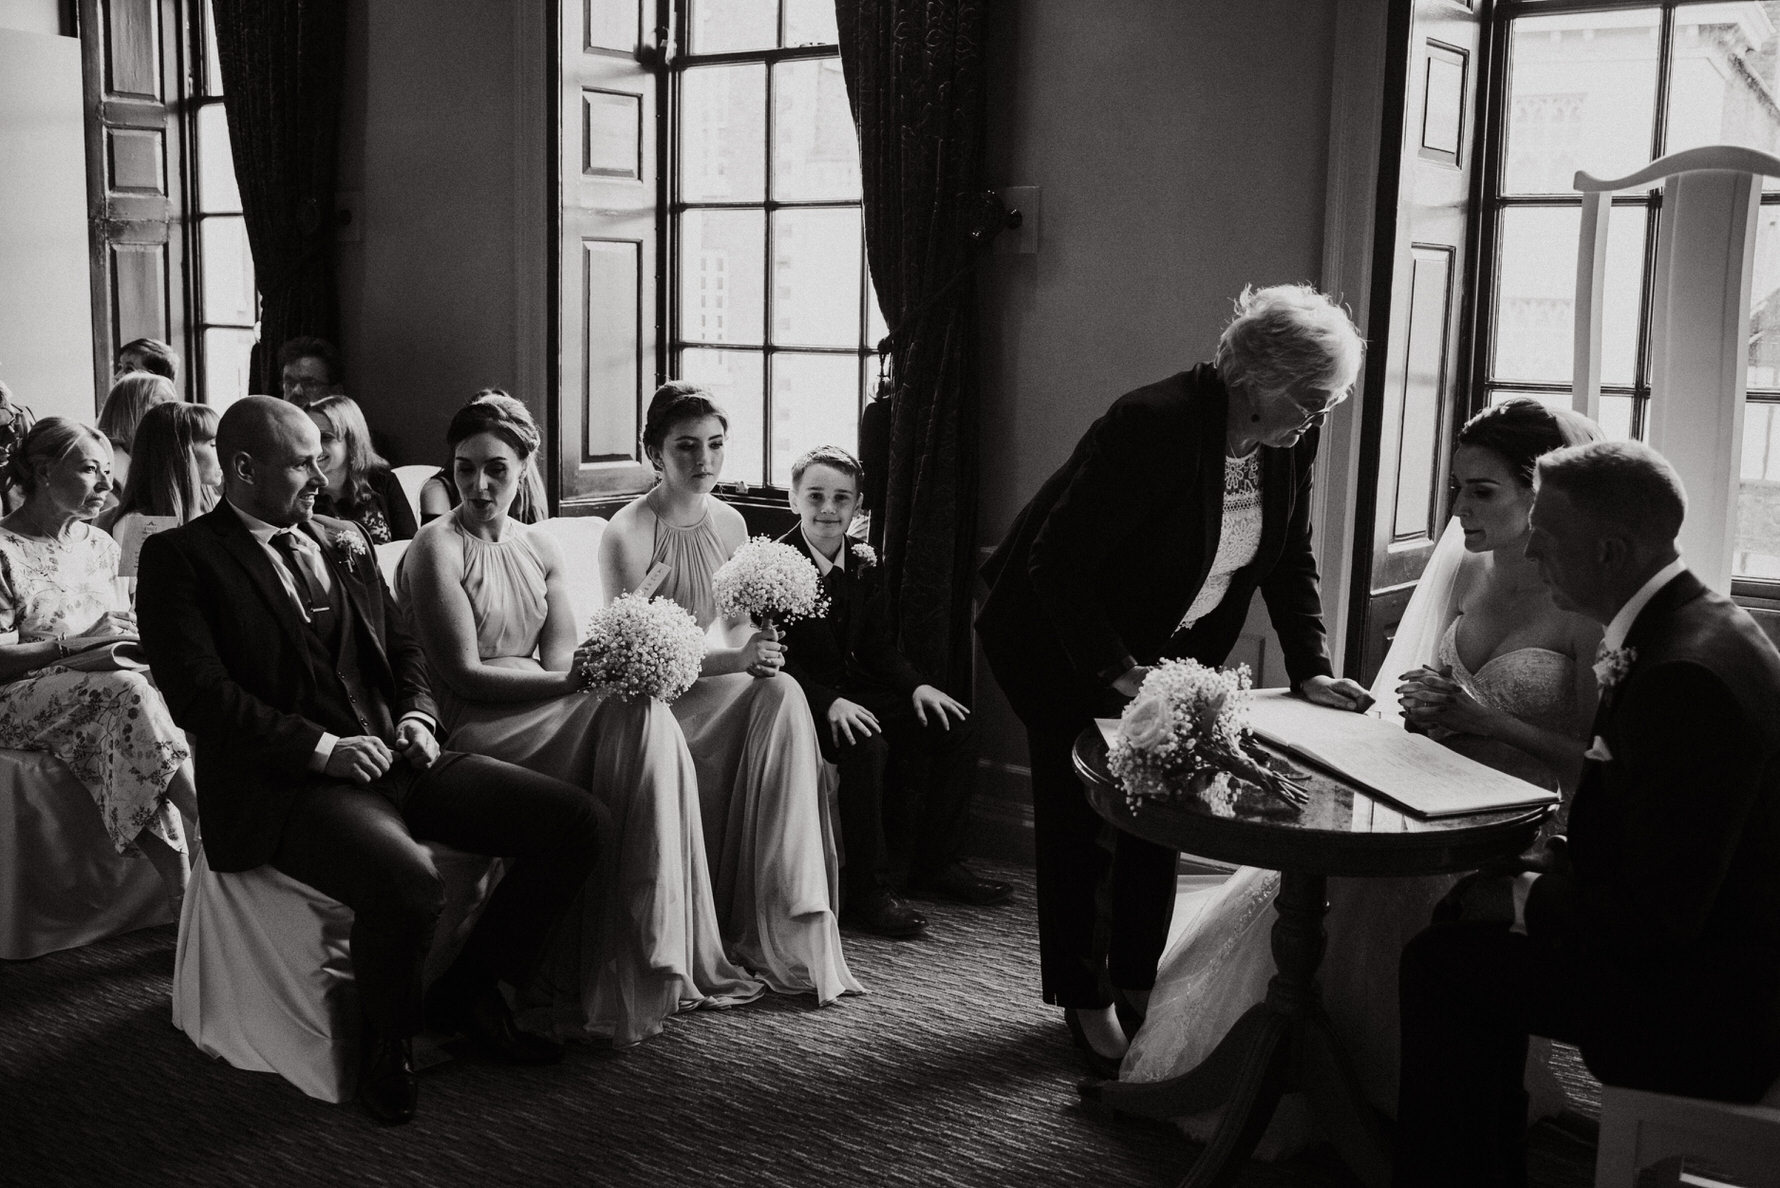 Candid Cheshire Documentary Wedding Photography at The Oddfellows in Chester by Louise Jacob. Prices start at £1500